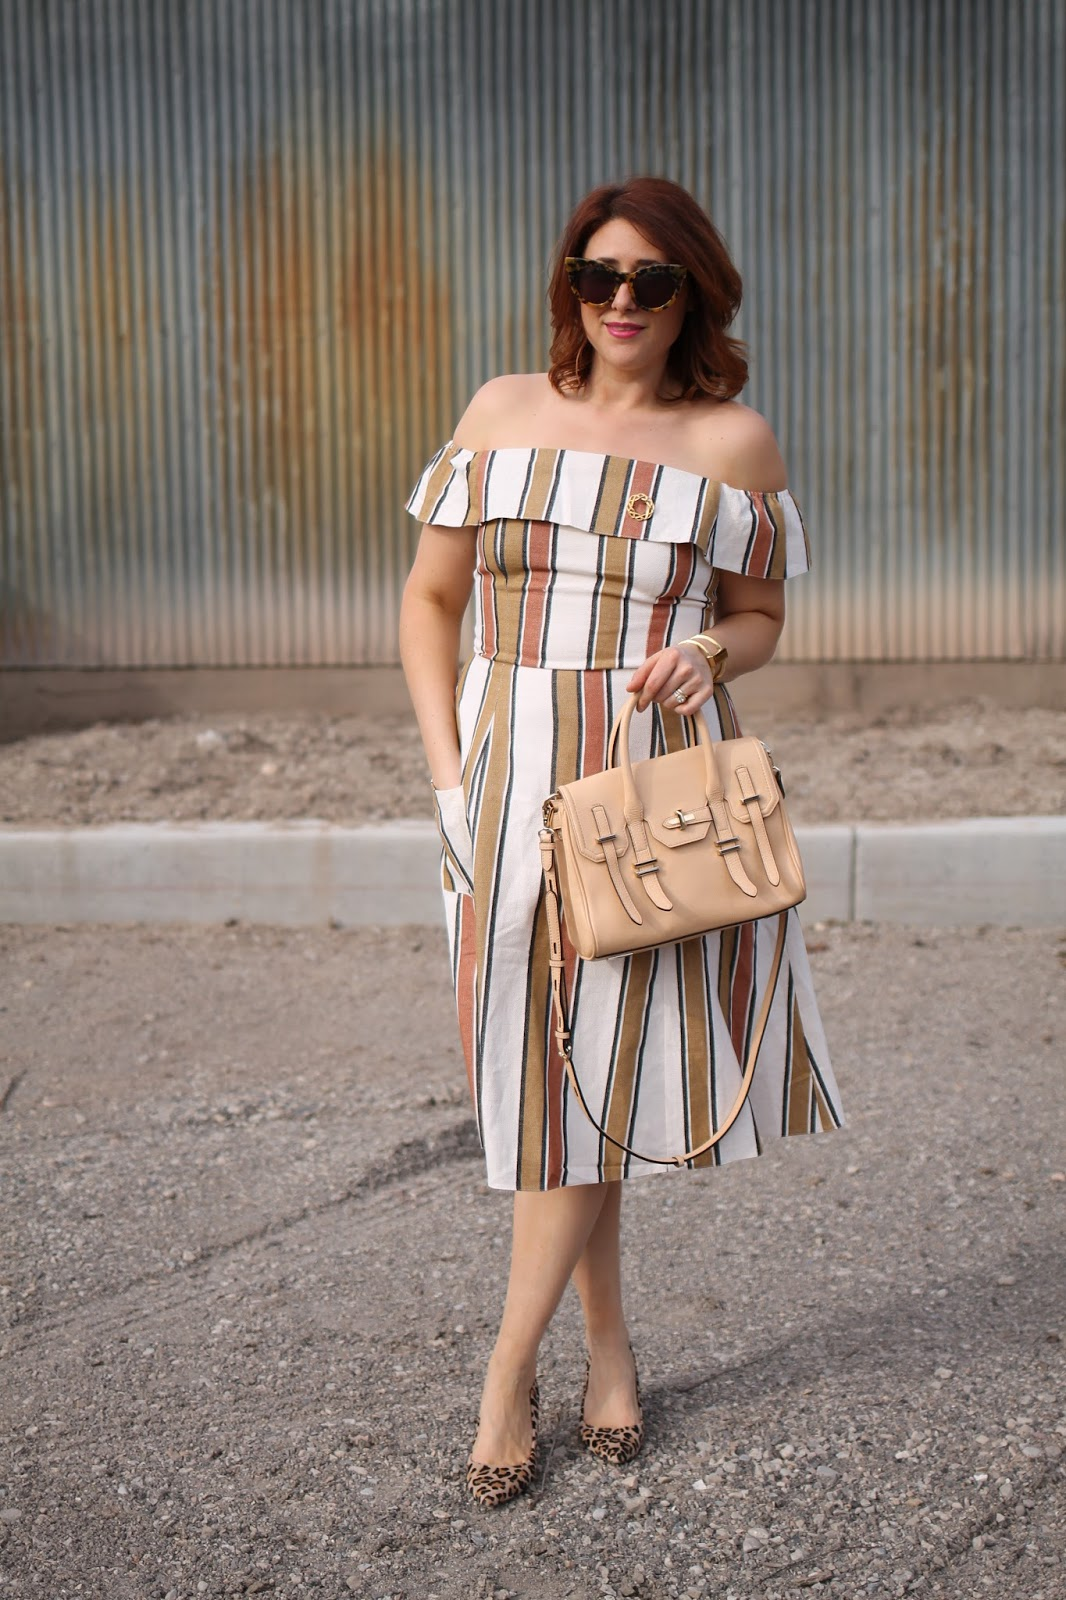 Karen walker starburst sunglasses, red hair, asos striped off the shoulder dress, Rebecca Minkoff Jules satchel, cheetah heels